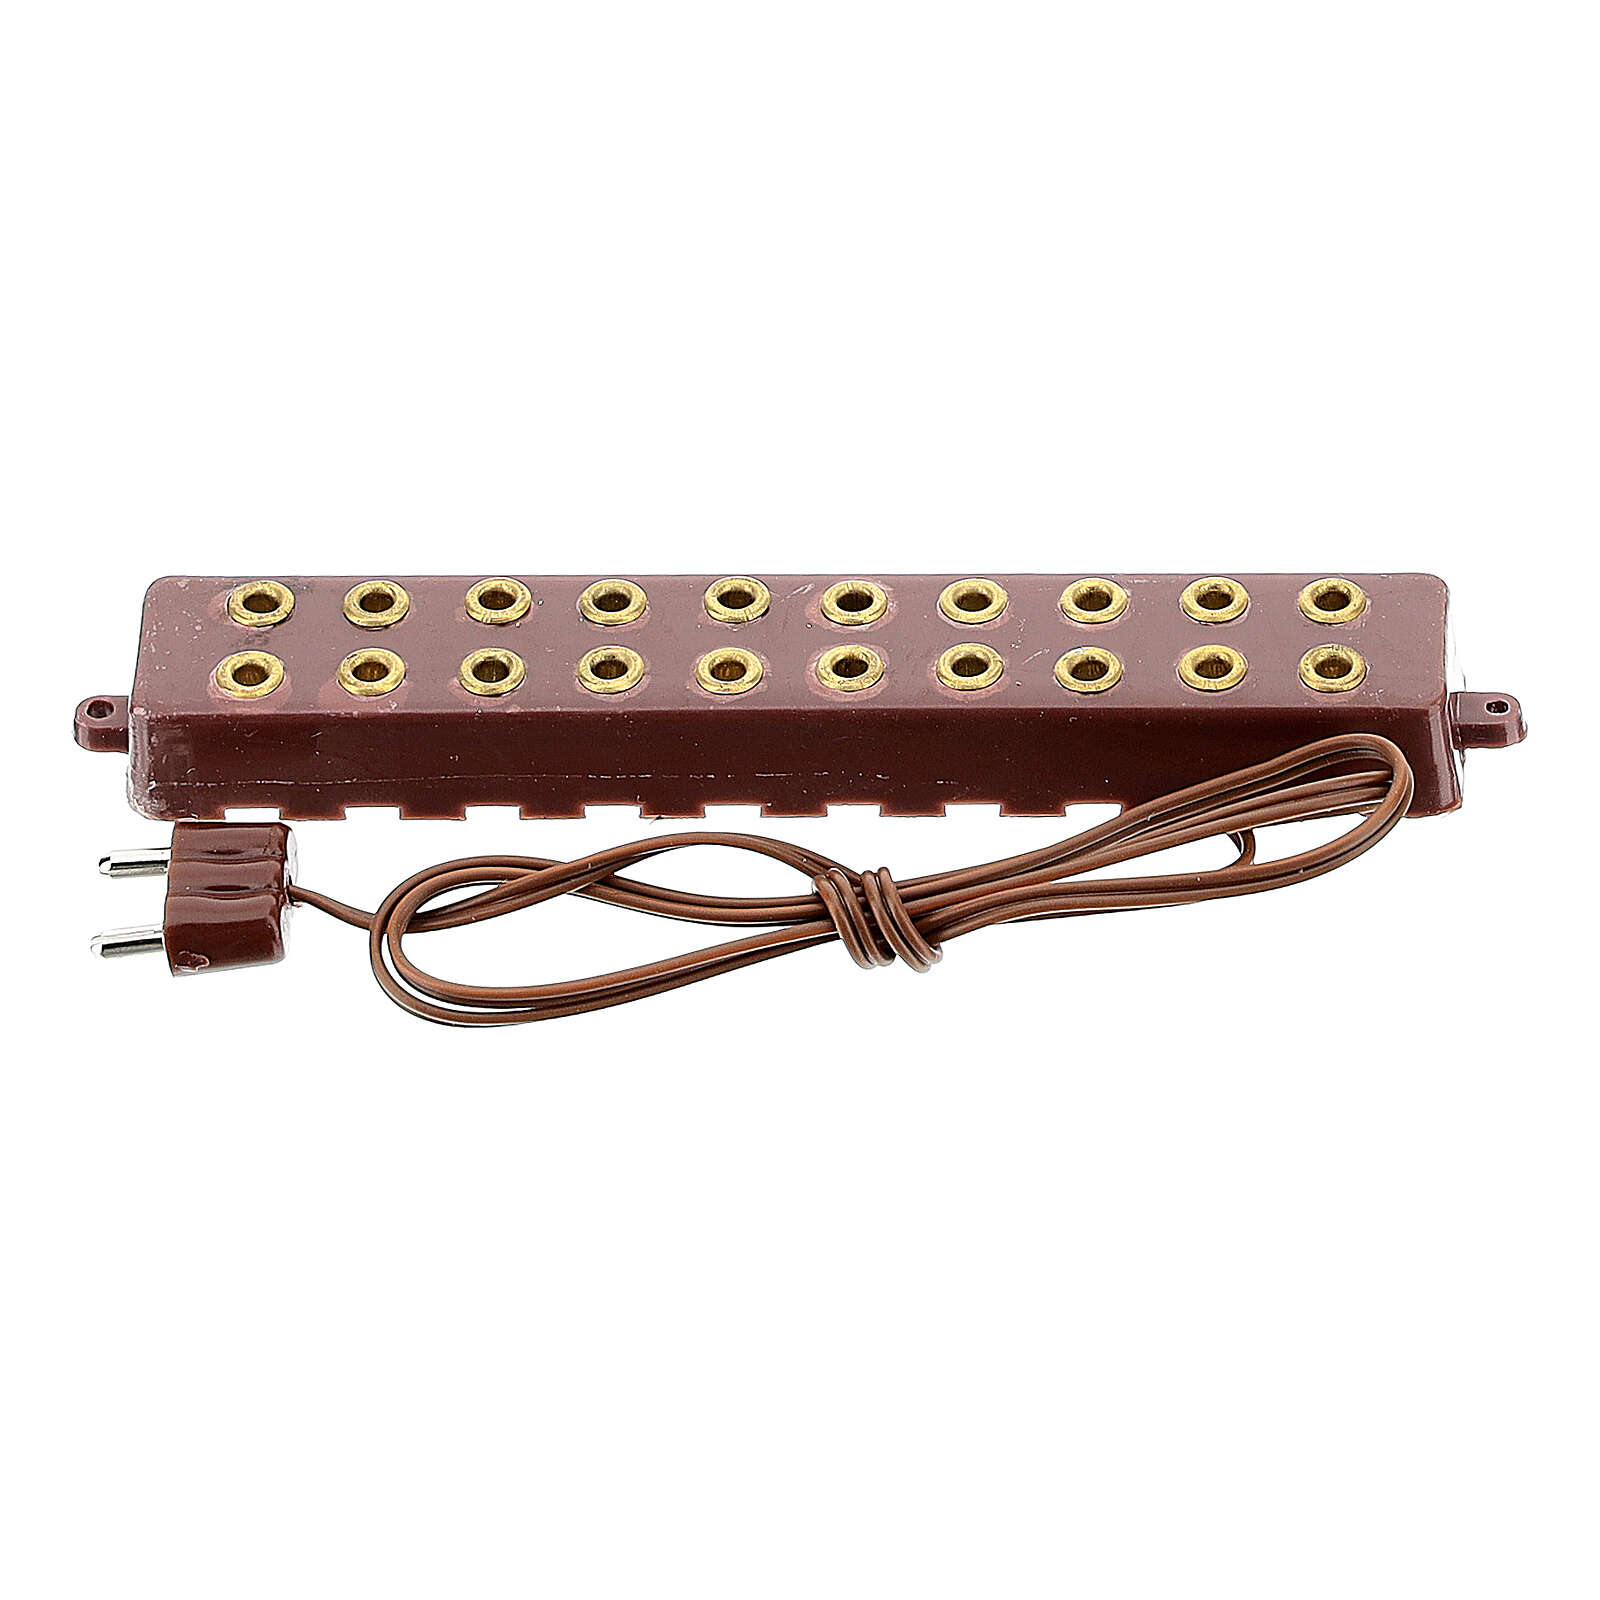 Multiple socket with 10 slots for 3.5 and 4.5V 4